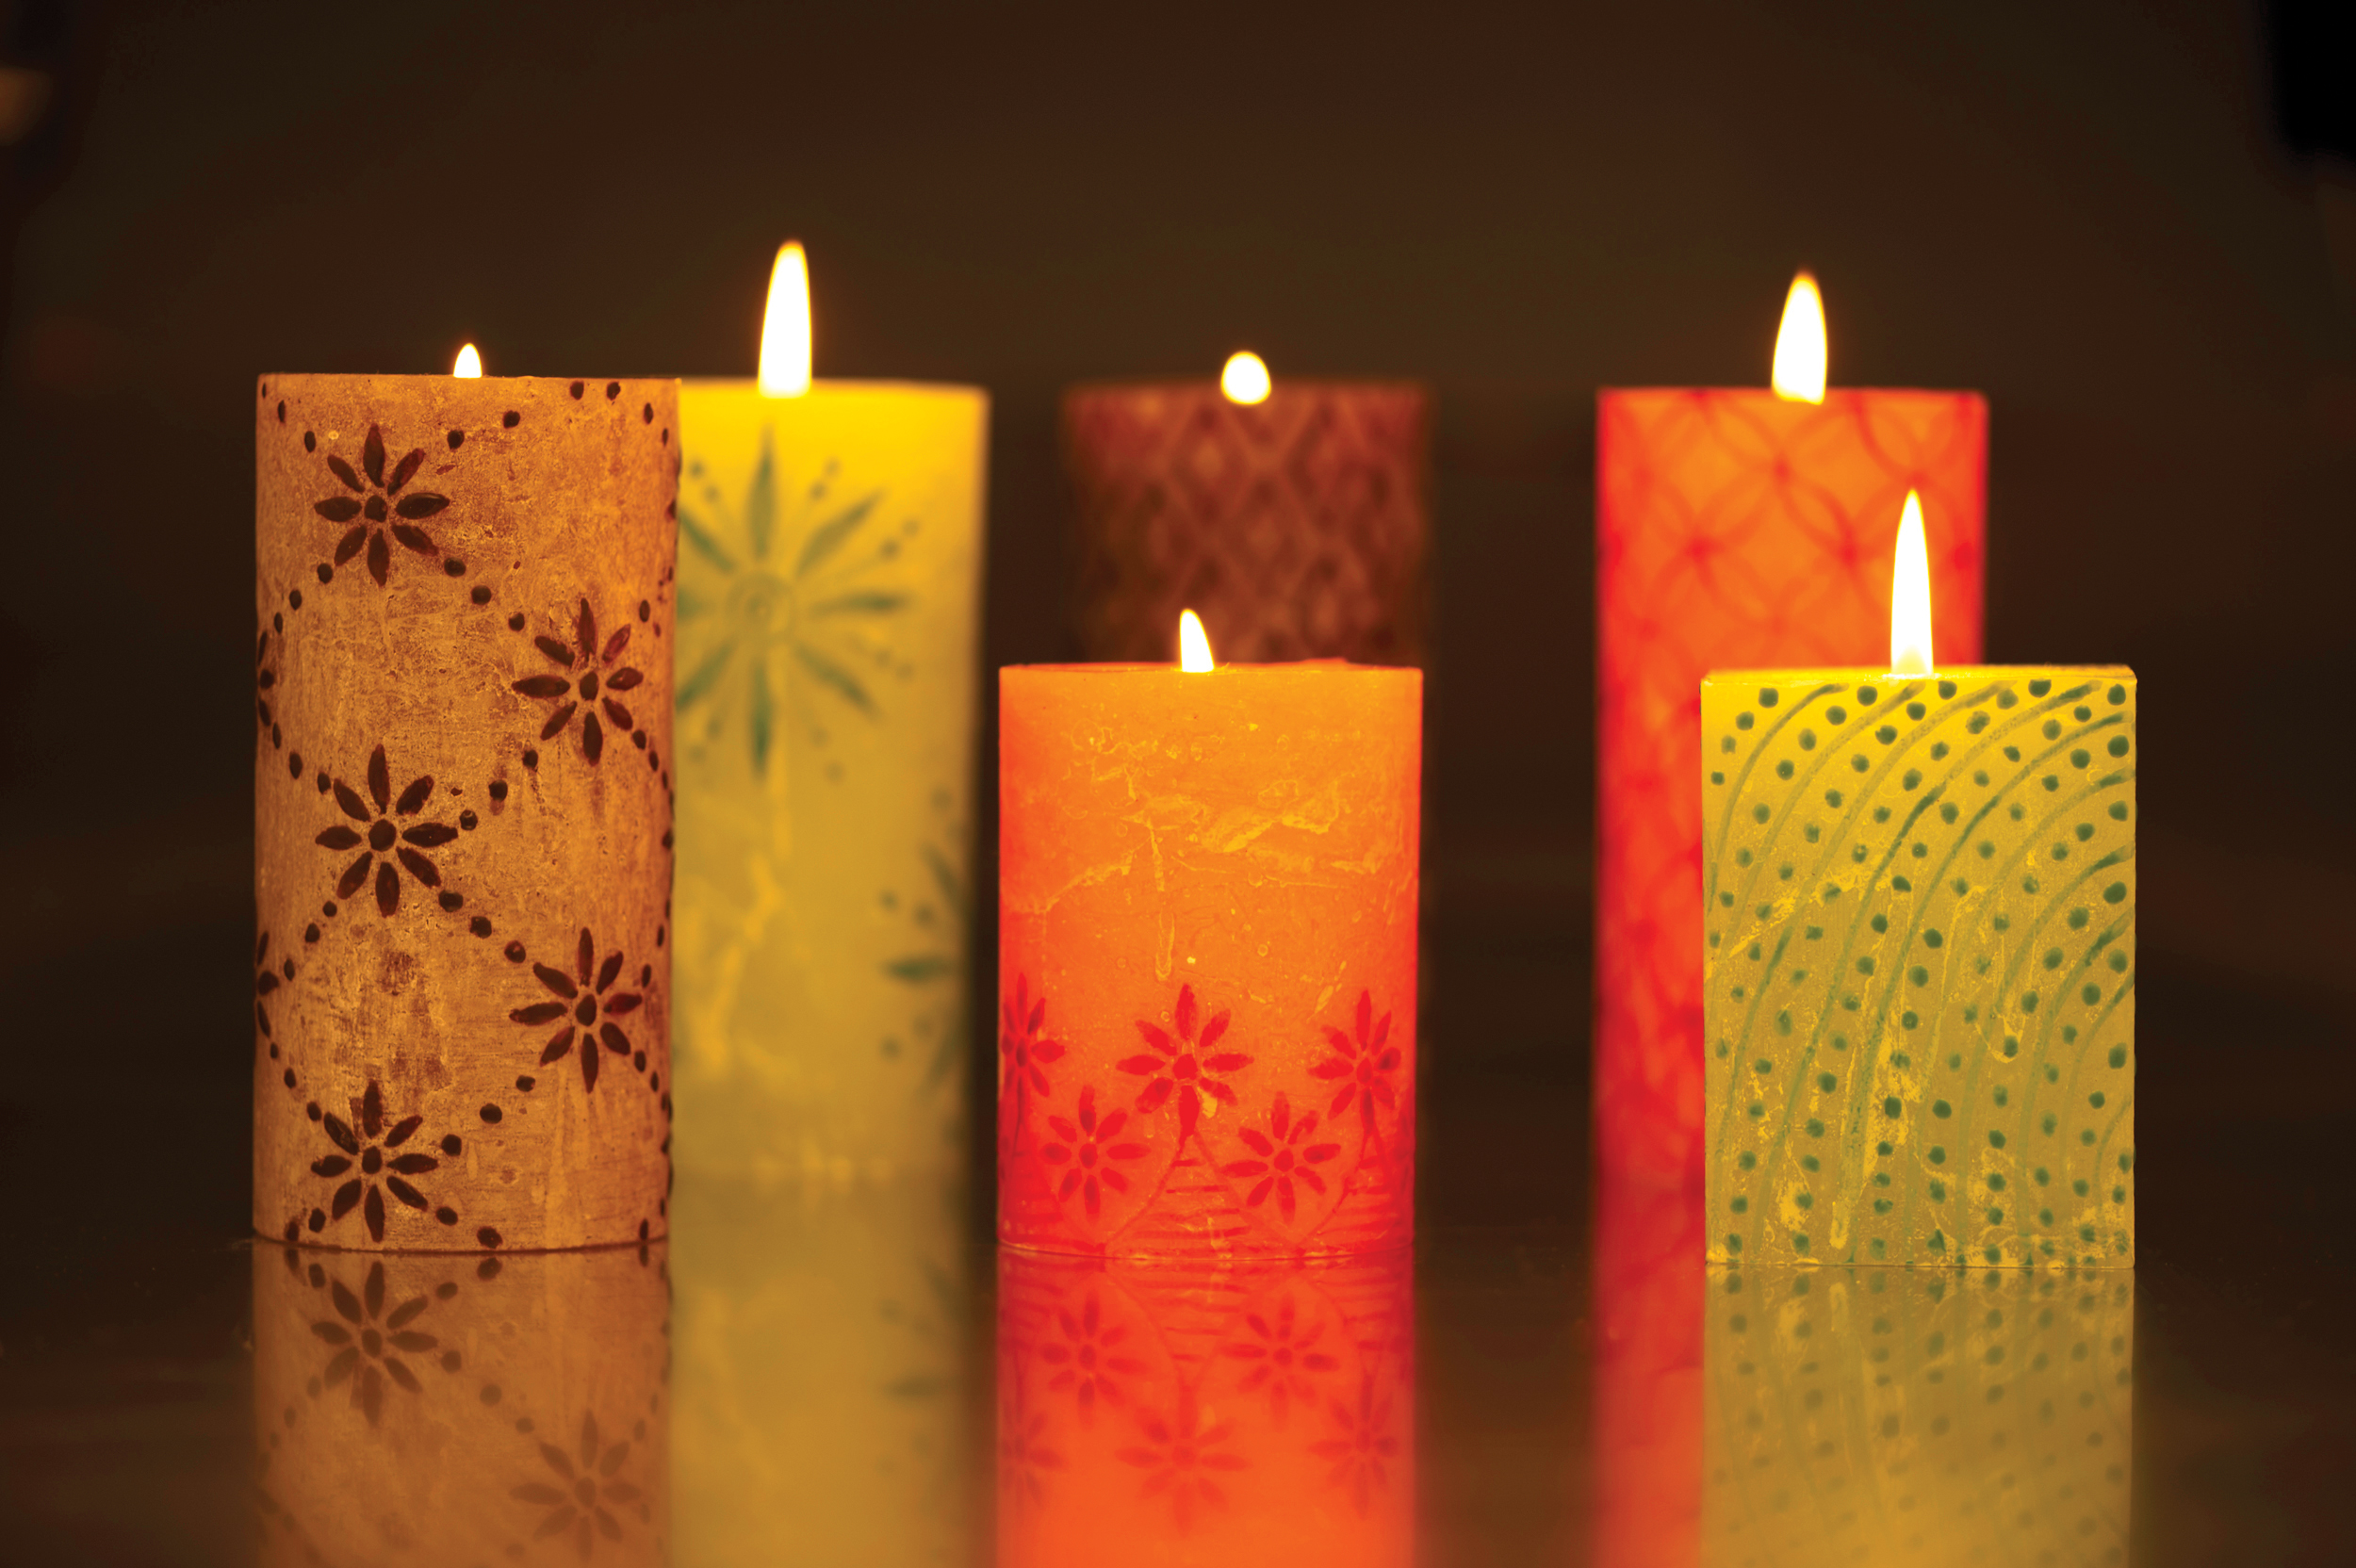 kapula-hand-painted-pillar-candles-lit-flame-glowing.jpg